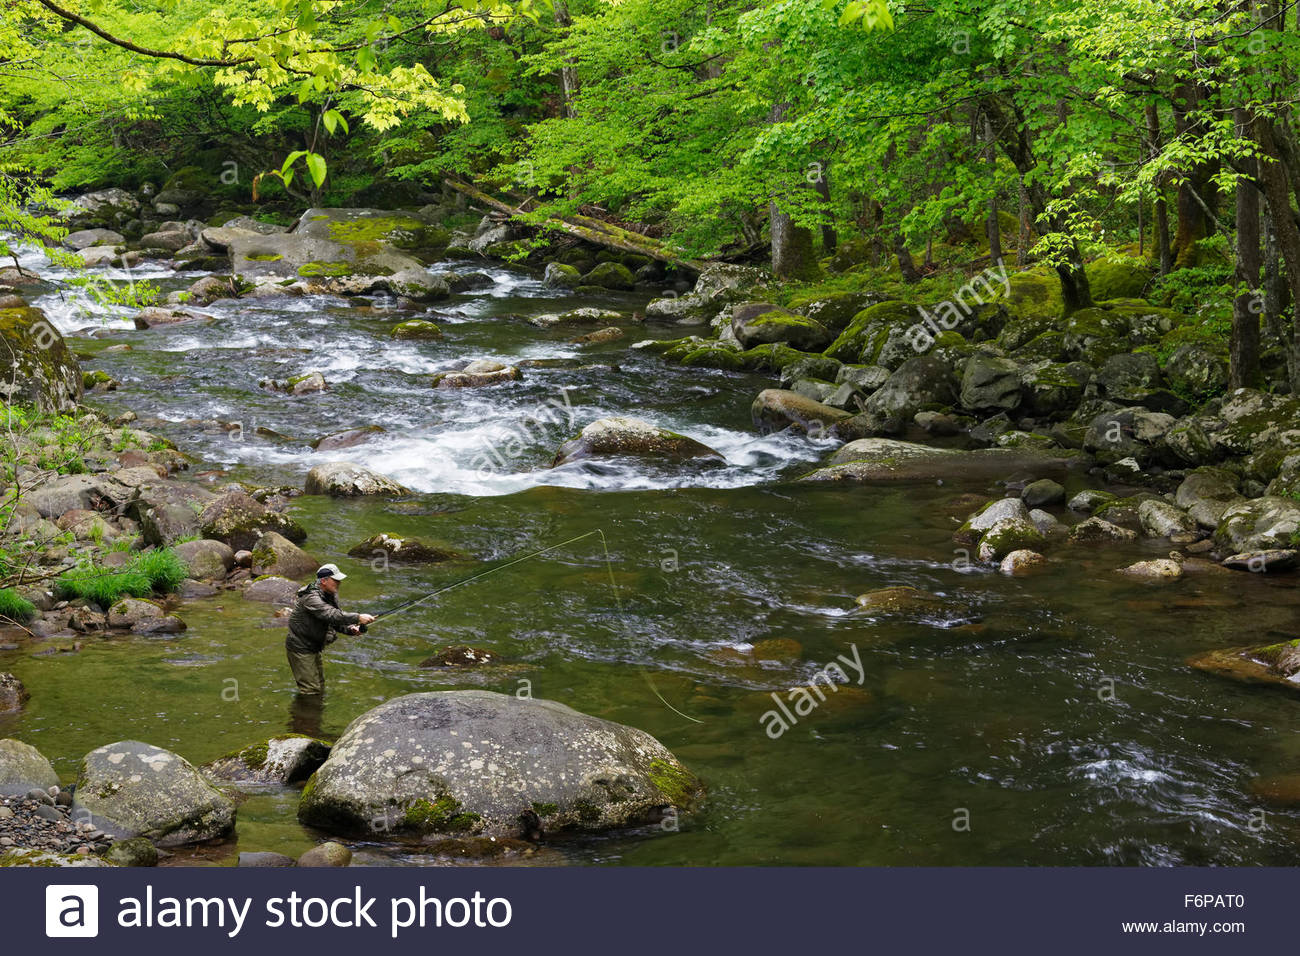 Man Fly Fishing in the Middle Prong Little River, Great Smoky Mountains National Park, Tennessee. - Stock Image